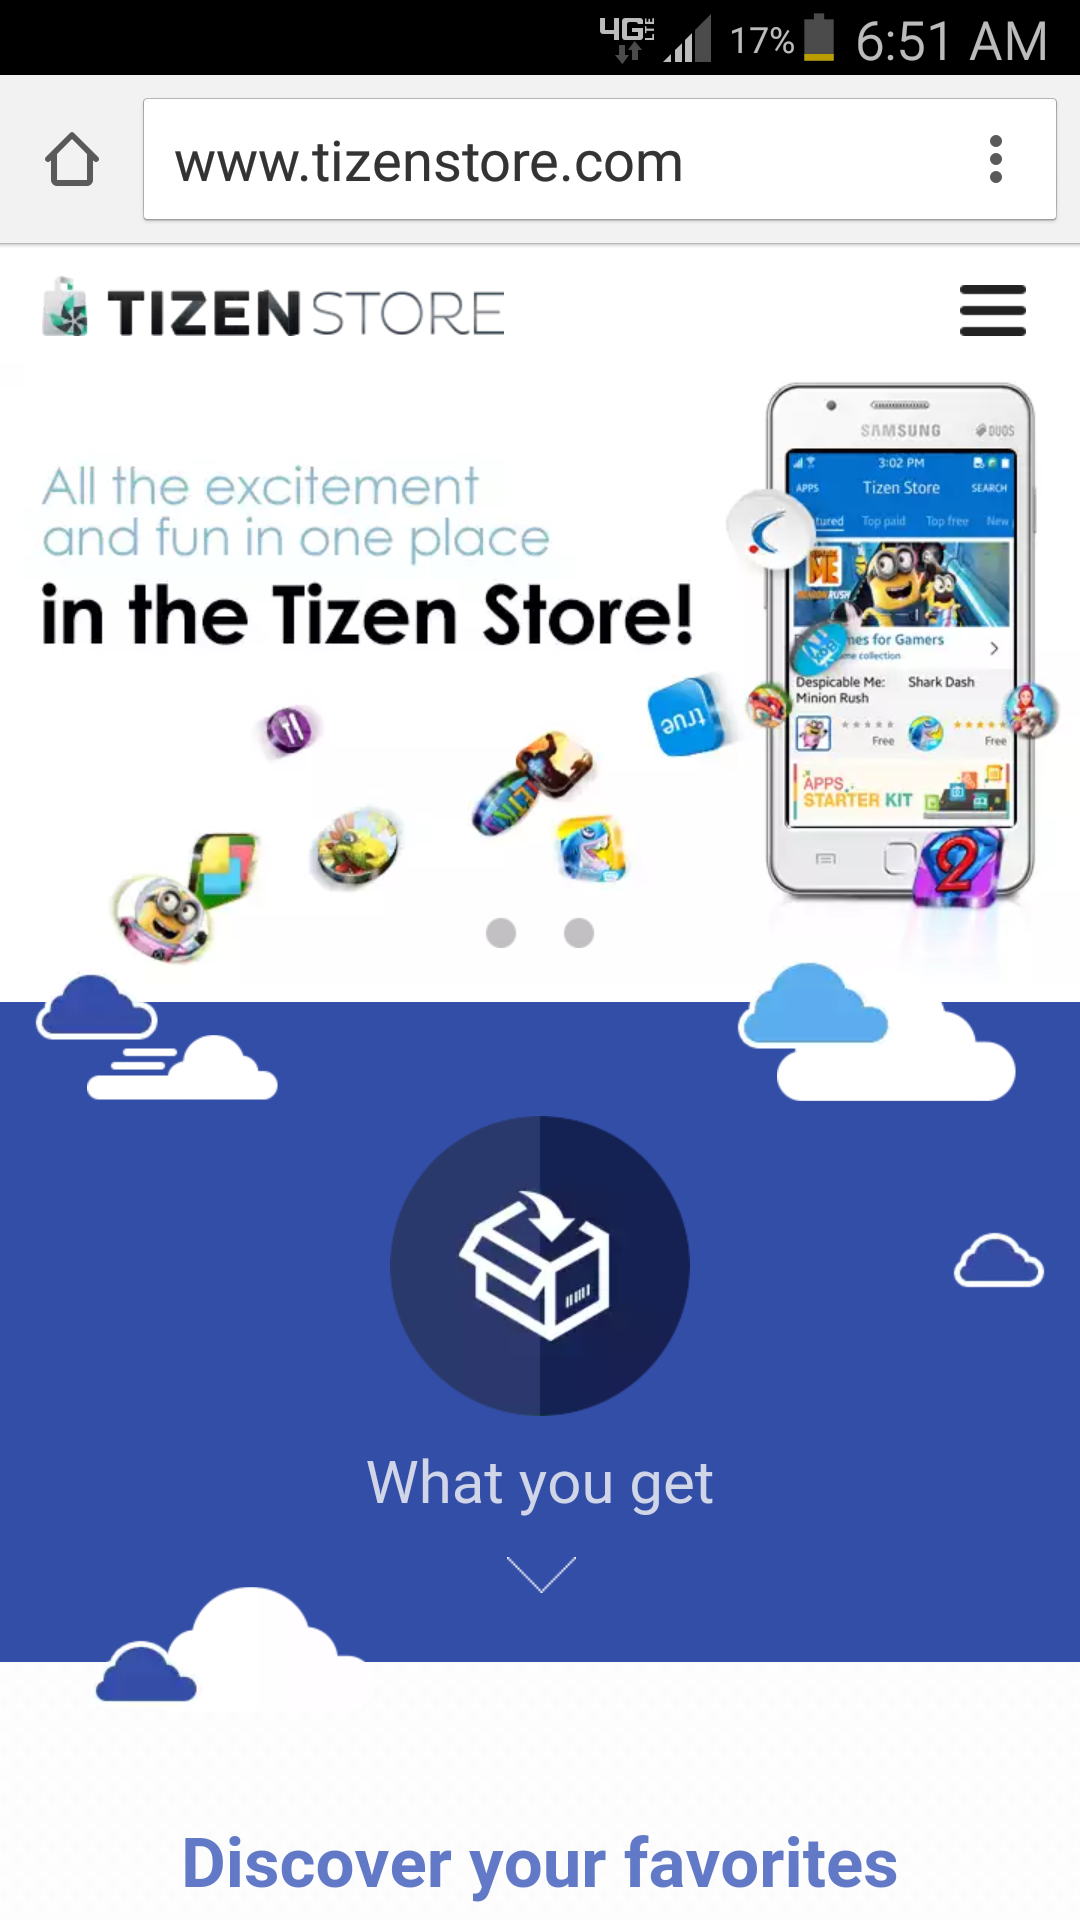 Tizen Store global US